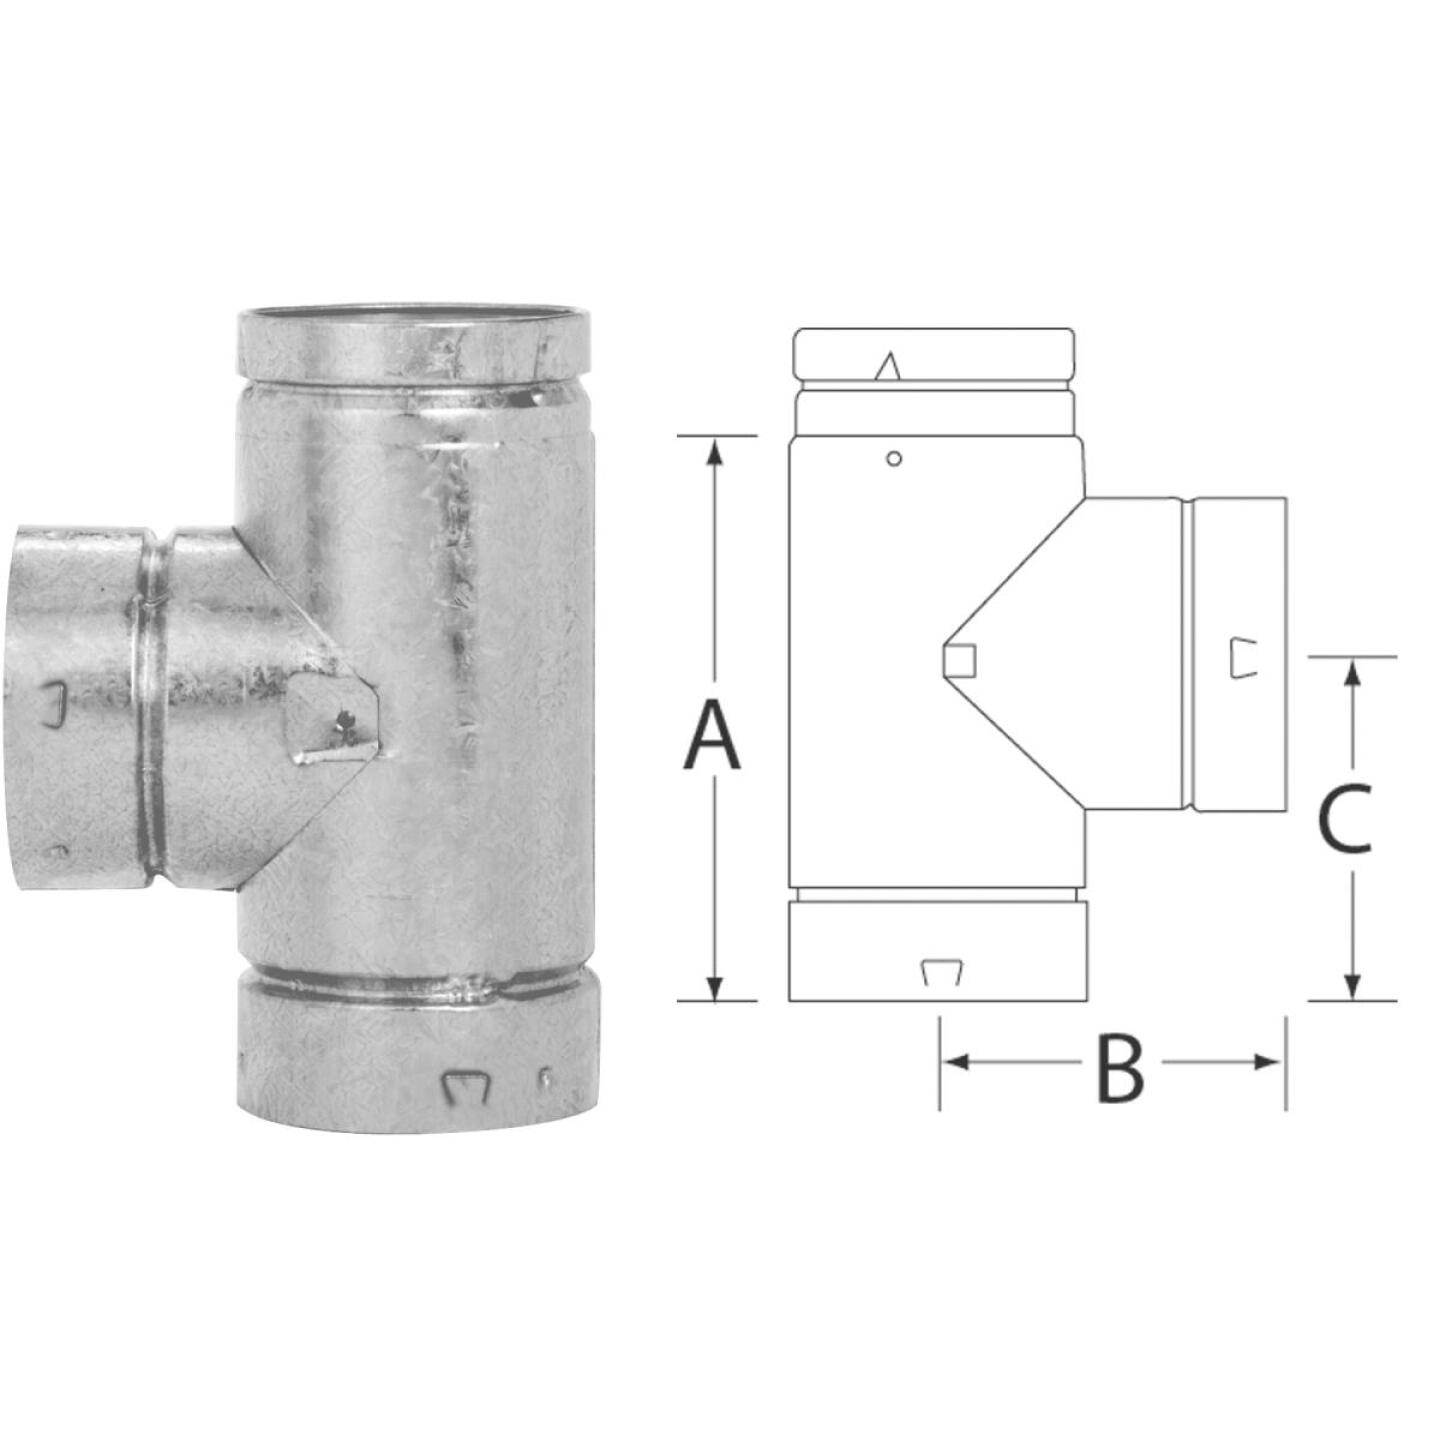 SELKIRK RV 4 In. x 8-1/2 In. x 4-3/4 In. Gas Vent Tee Image 1